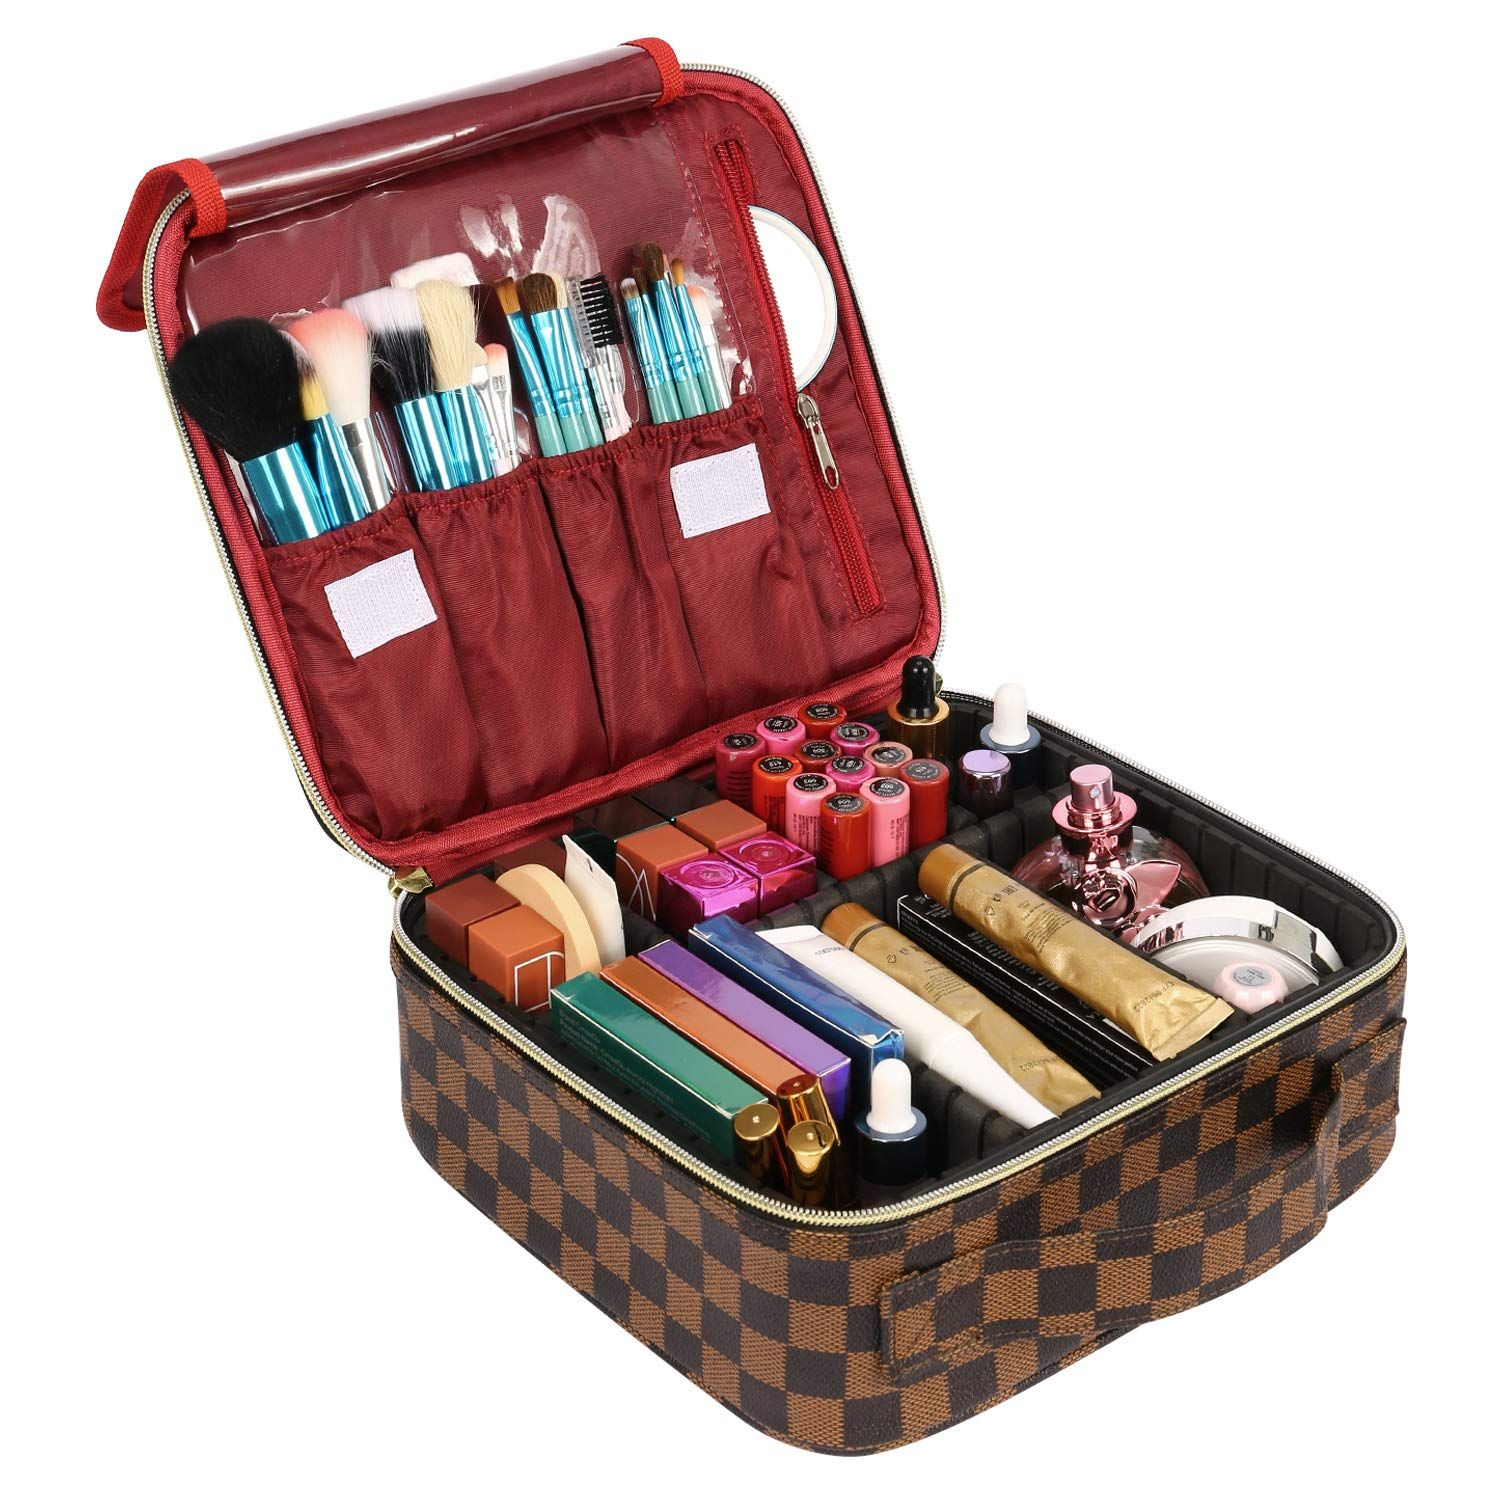 The Luxouria Checkered Makeup Bag Elegant Travel Line Premium Designer Pu Leather Protective Hard Shell 6 Adjustable Cosmetic Dividers Brush Cover 1 In 2020 Makeup Bags Travel Makeup Case Makeup Travel Case